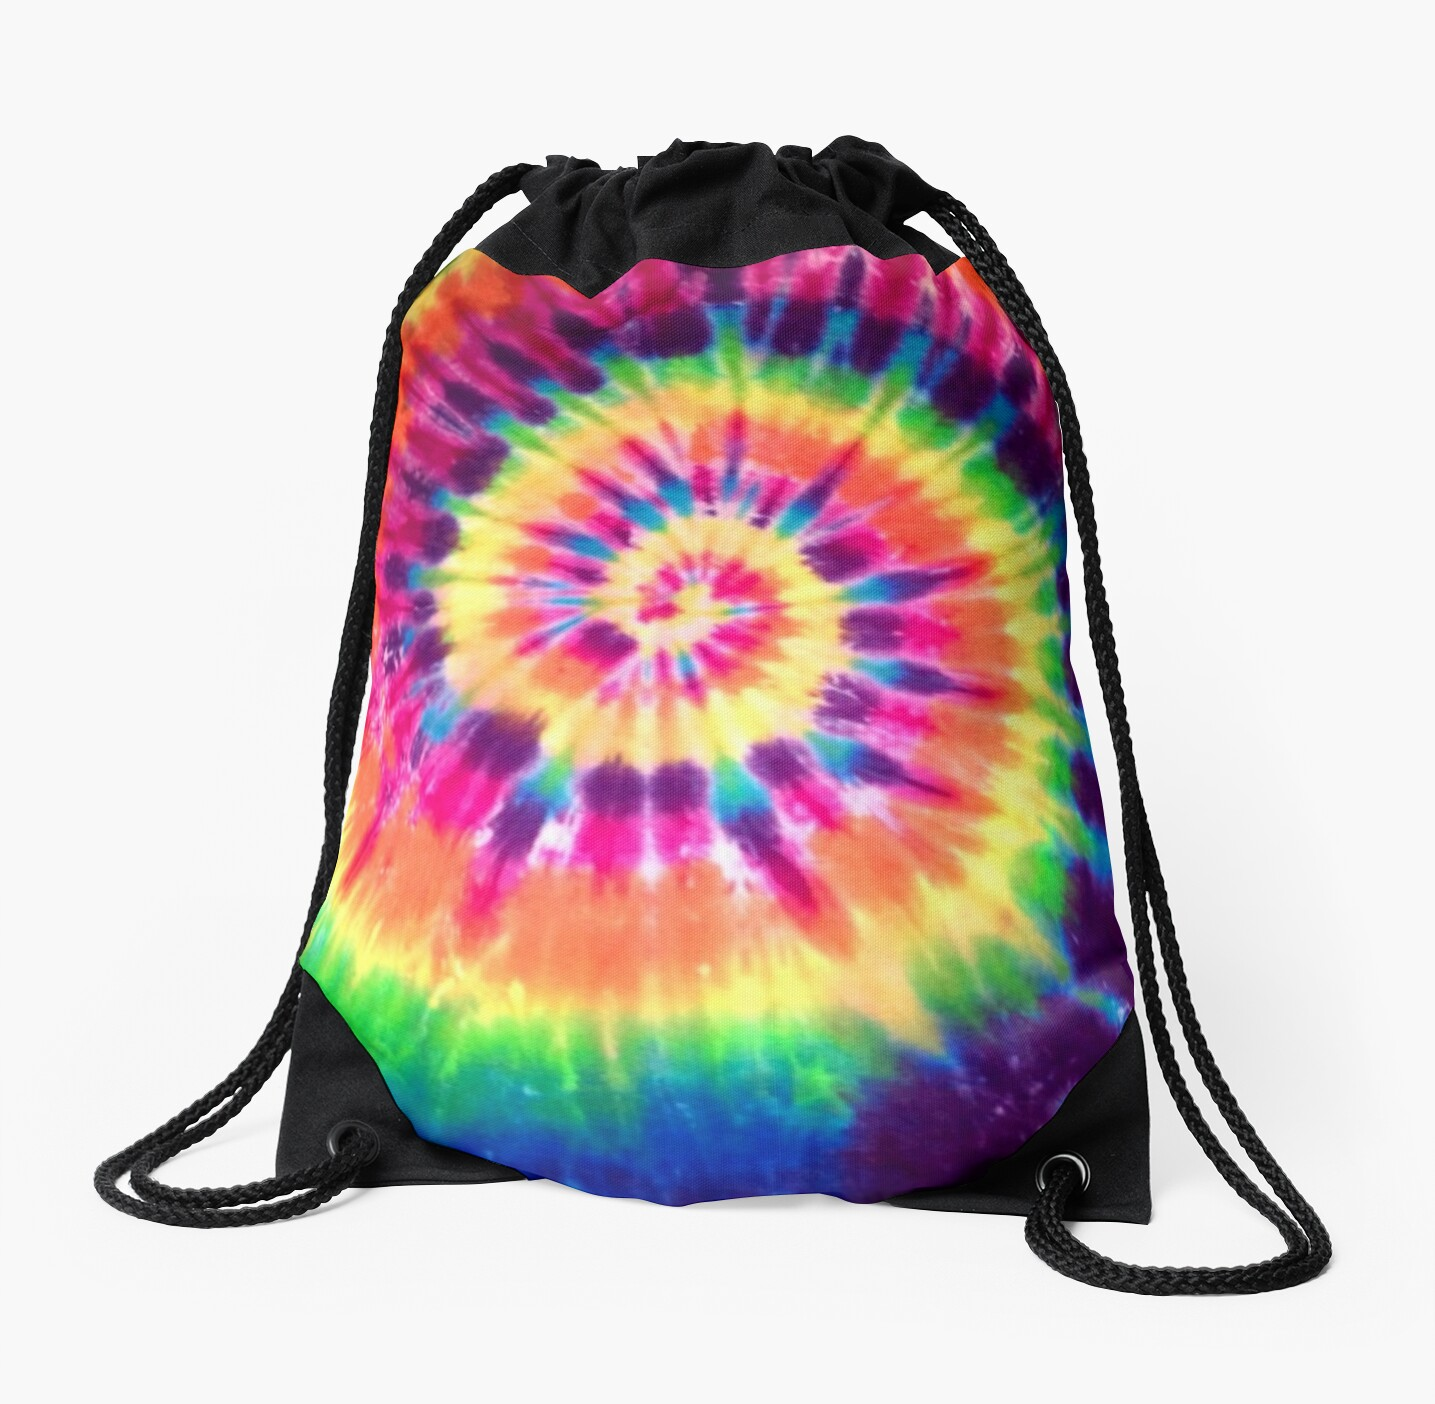 Case Ih Home Decor Quot Tie Dye Quot Drawstring Bags By Mad Designs Redbubble